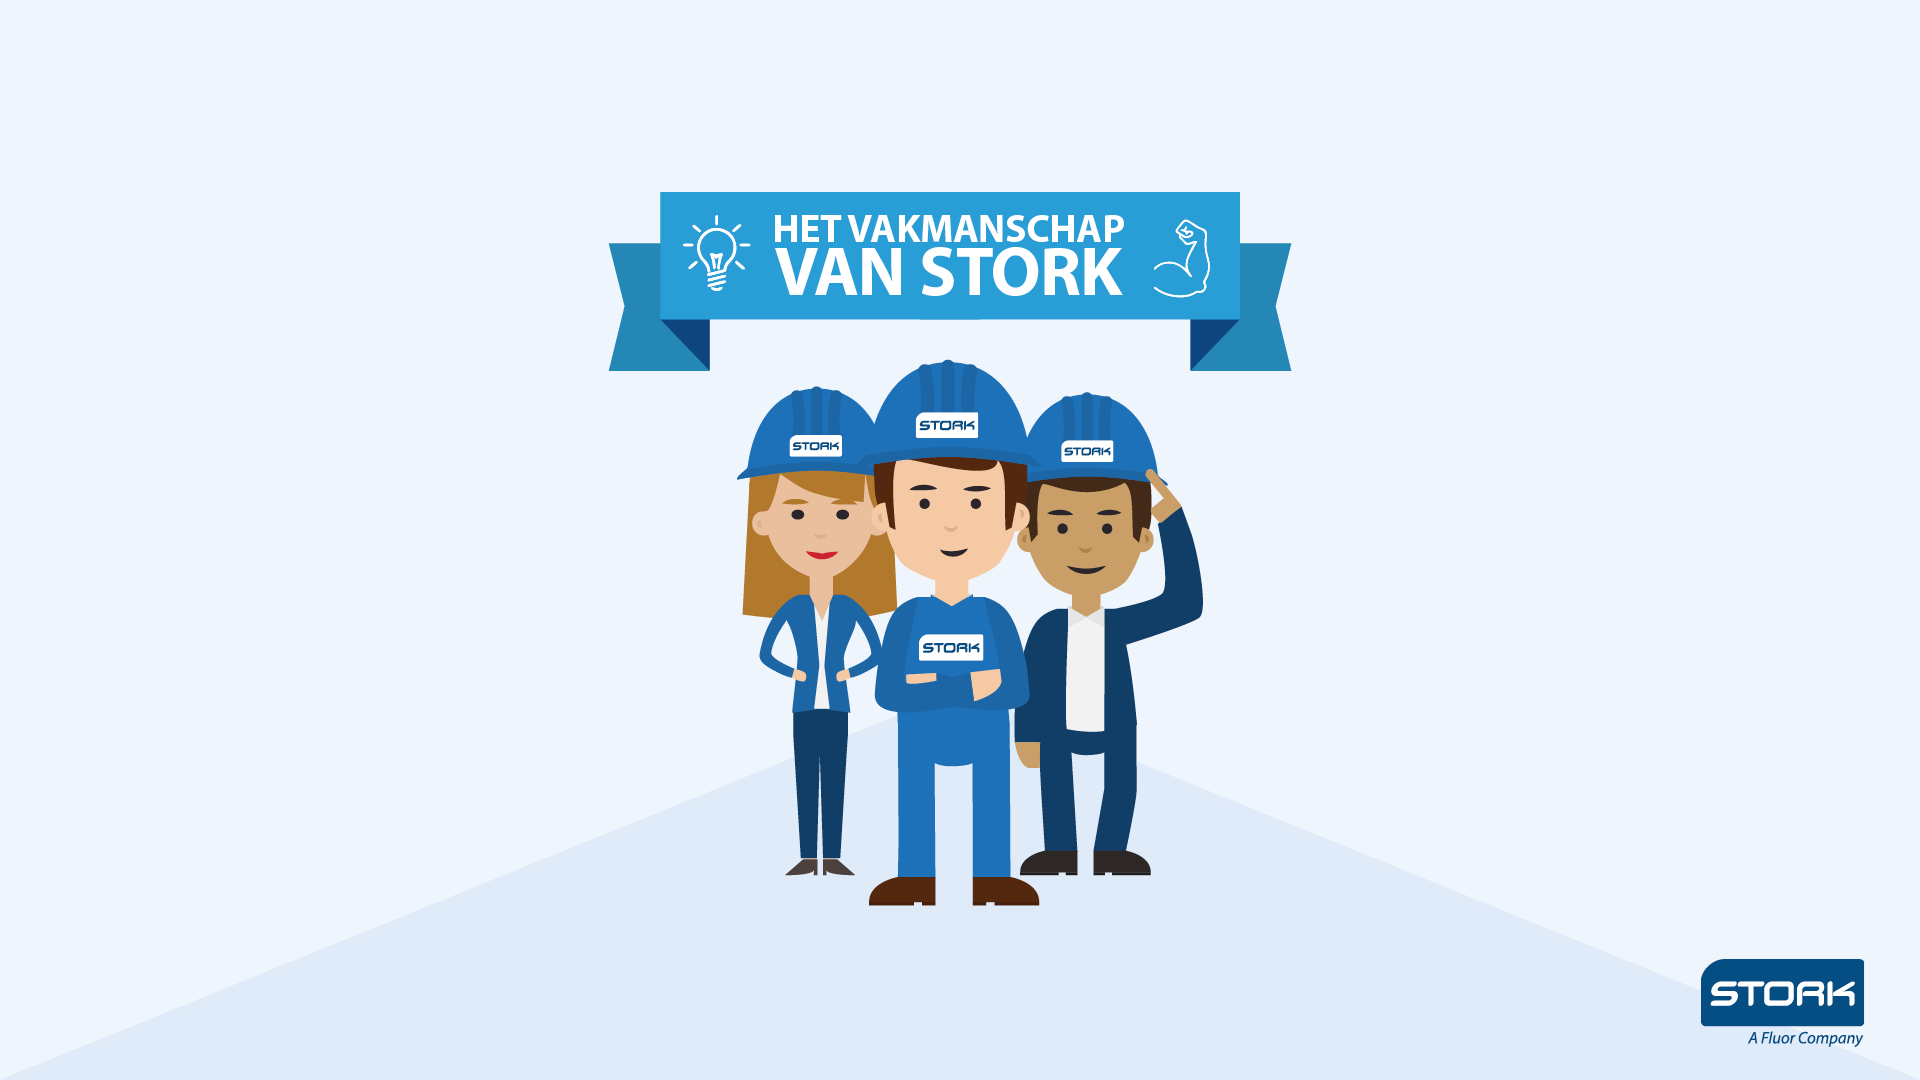 Image and design of Operational Excellence campaign for Stork Netherlands - with Noortje Peek